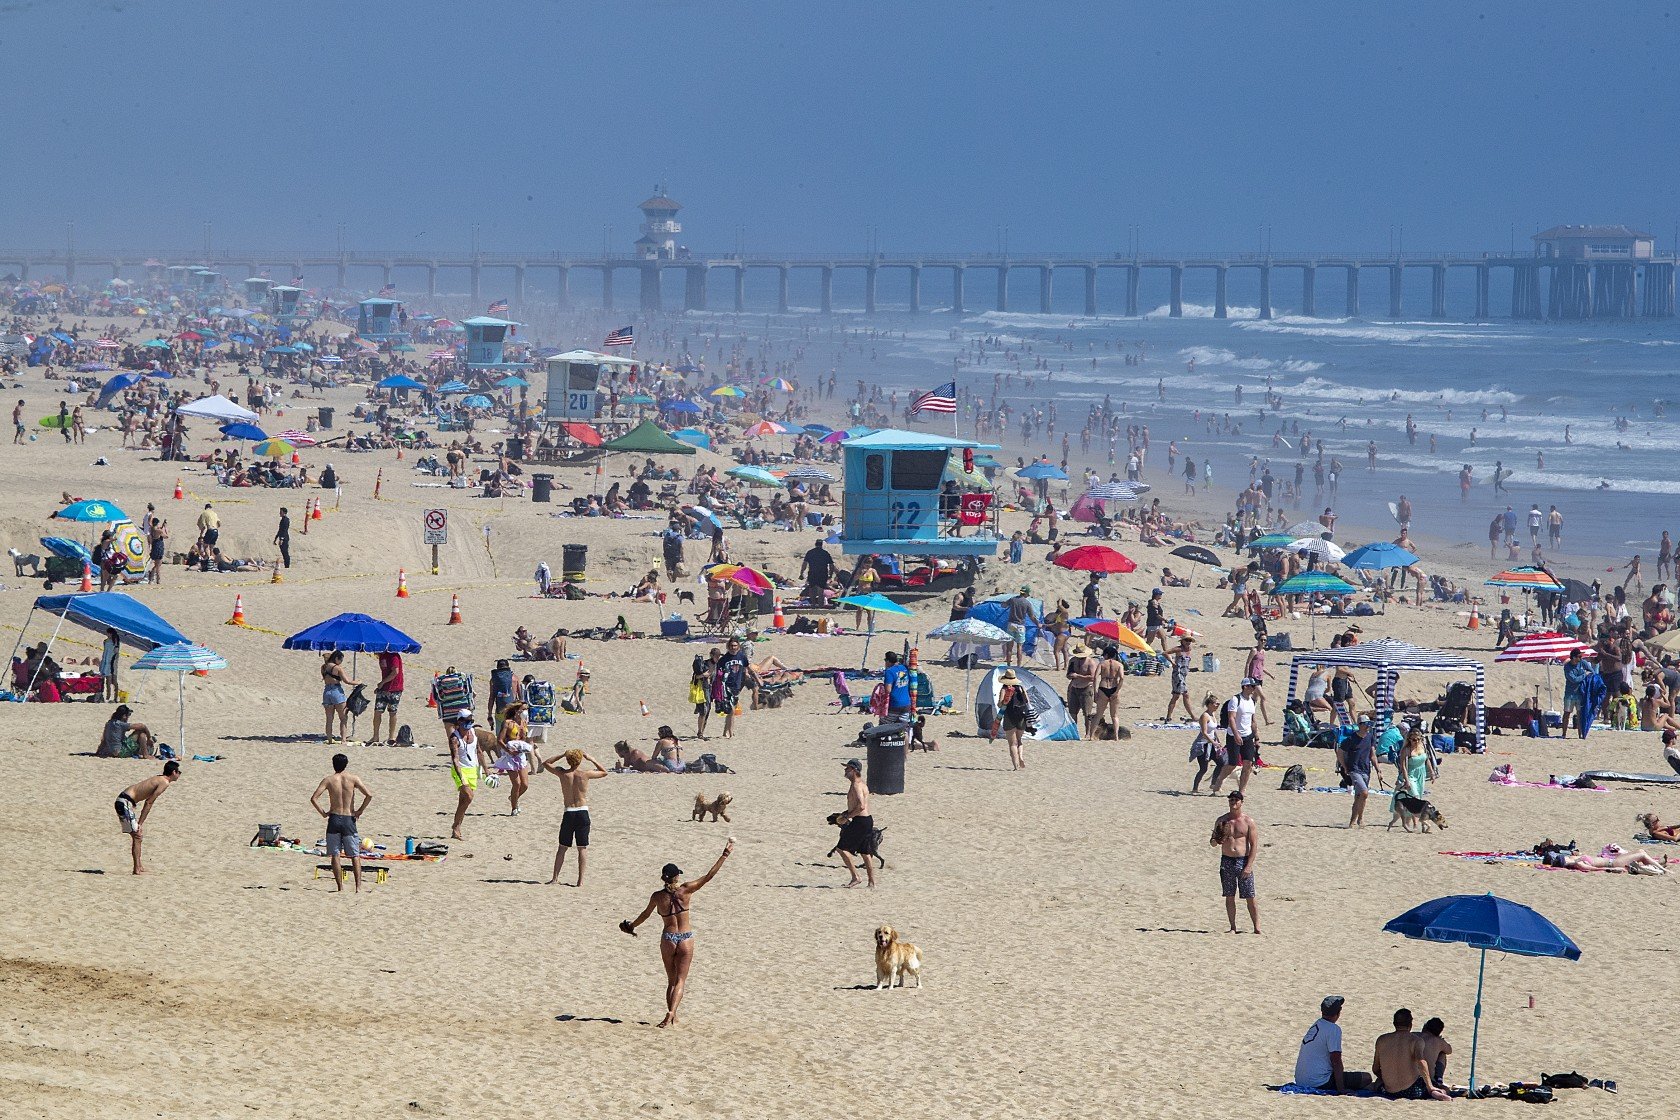 Thousands of beachgoers enjoy a sunny day at Huntington Beach despite the state-mandated stay-at-home order on April 25, 2020. (Allen J. Schaben/Los Angeles Times)